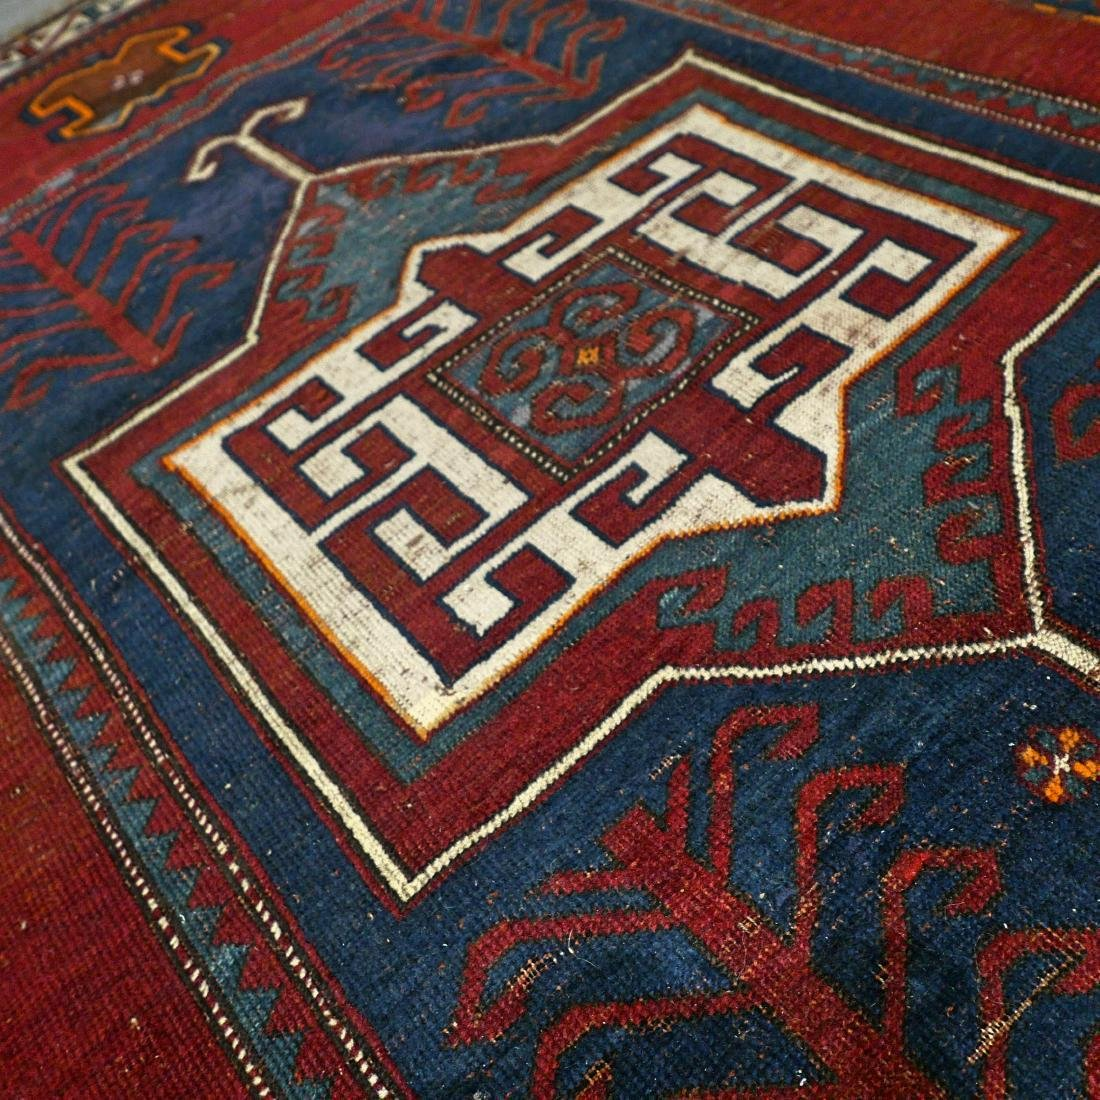 6.6 x 4.6 Caucasian Kazak rug - early 1900s - - 6